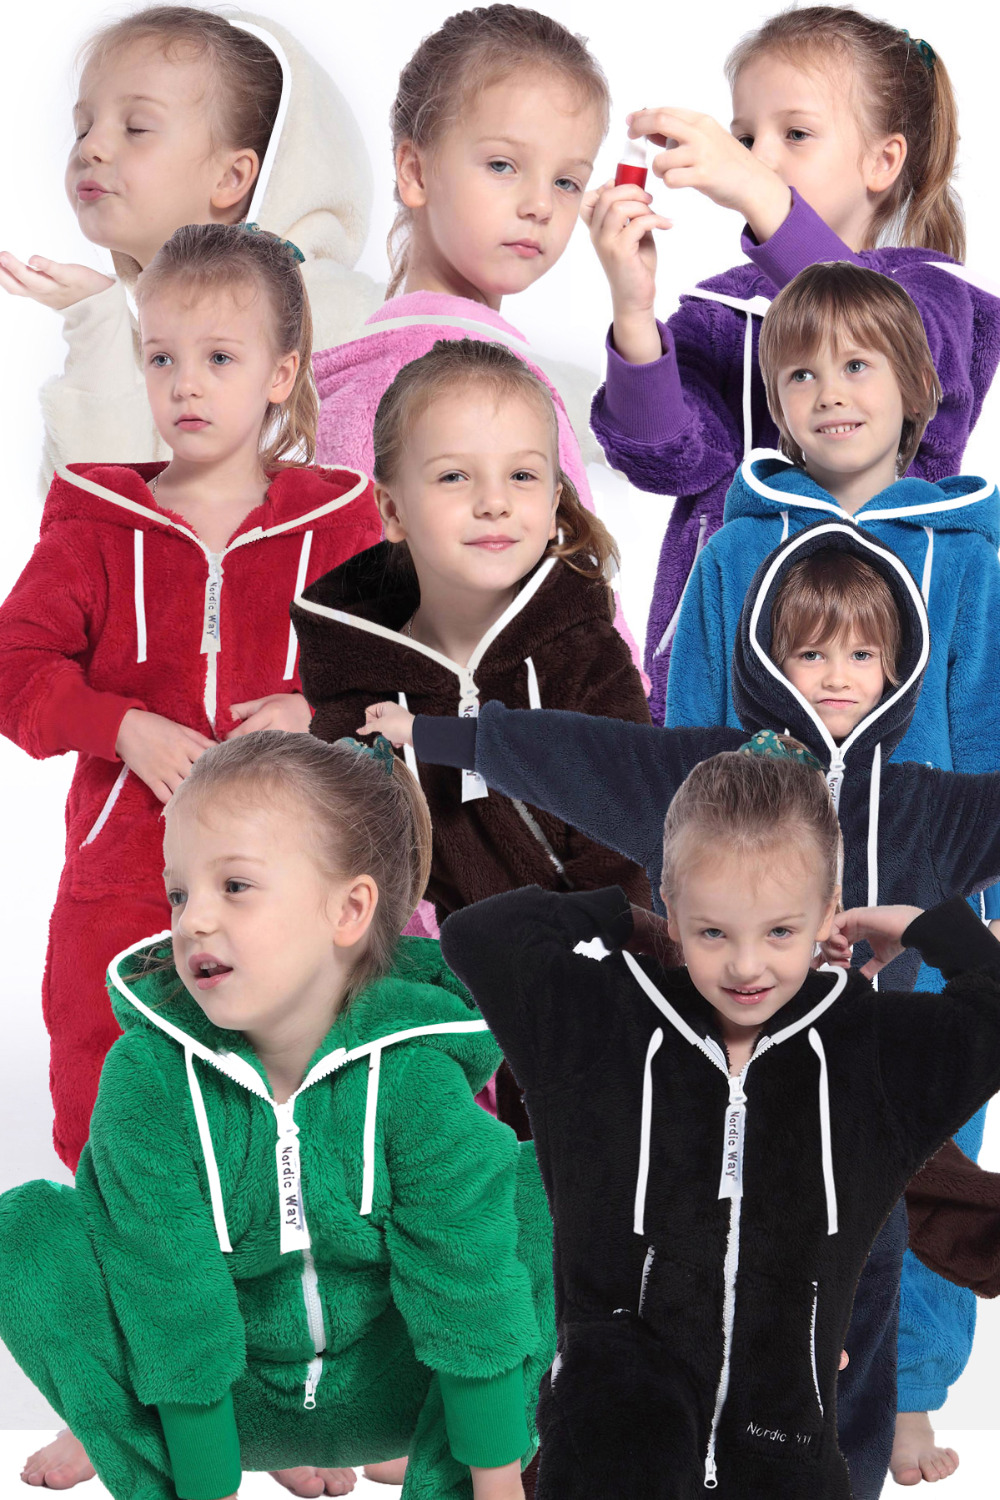 Nordic Way Kids Romper Teddy Fleece One Piece Jumpsuit Comfy Brushed Hoody All In One Playsuit handy all in one screwdrivers toolkit 31 piece set